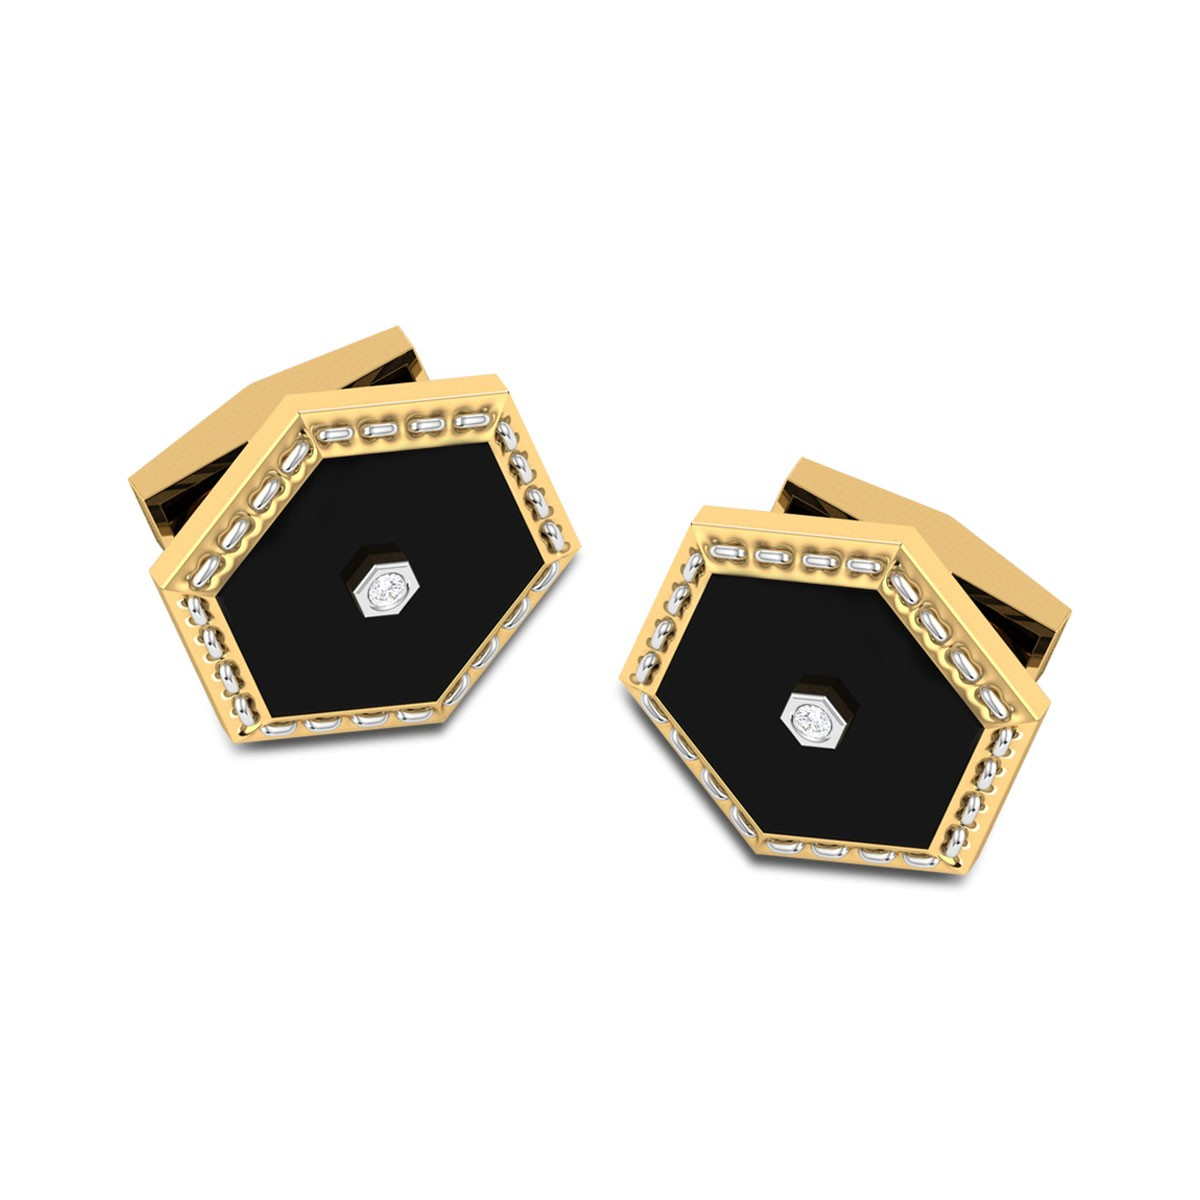 Indra Black Onyx Diamond Cufflinks